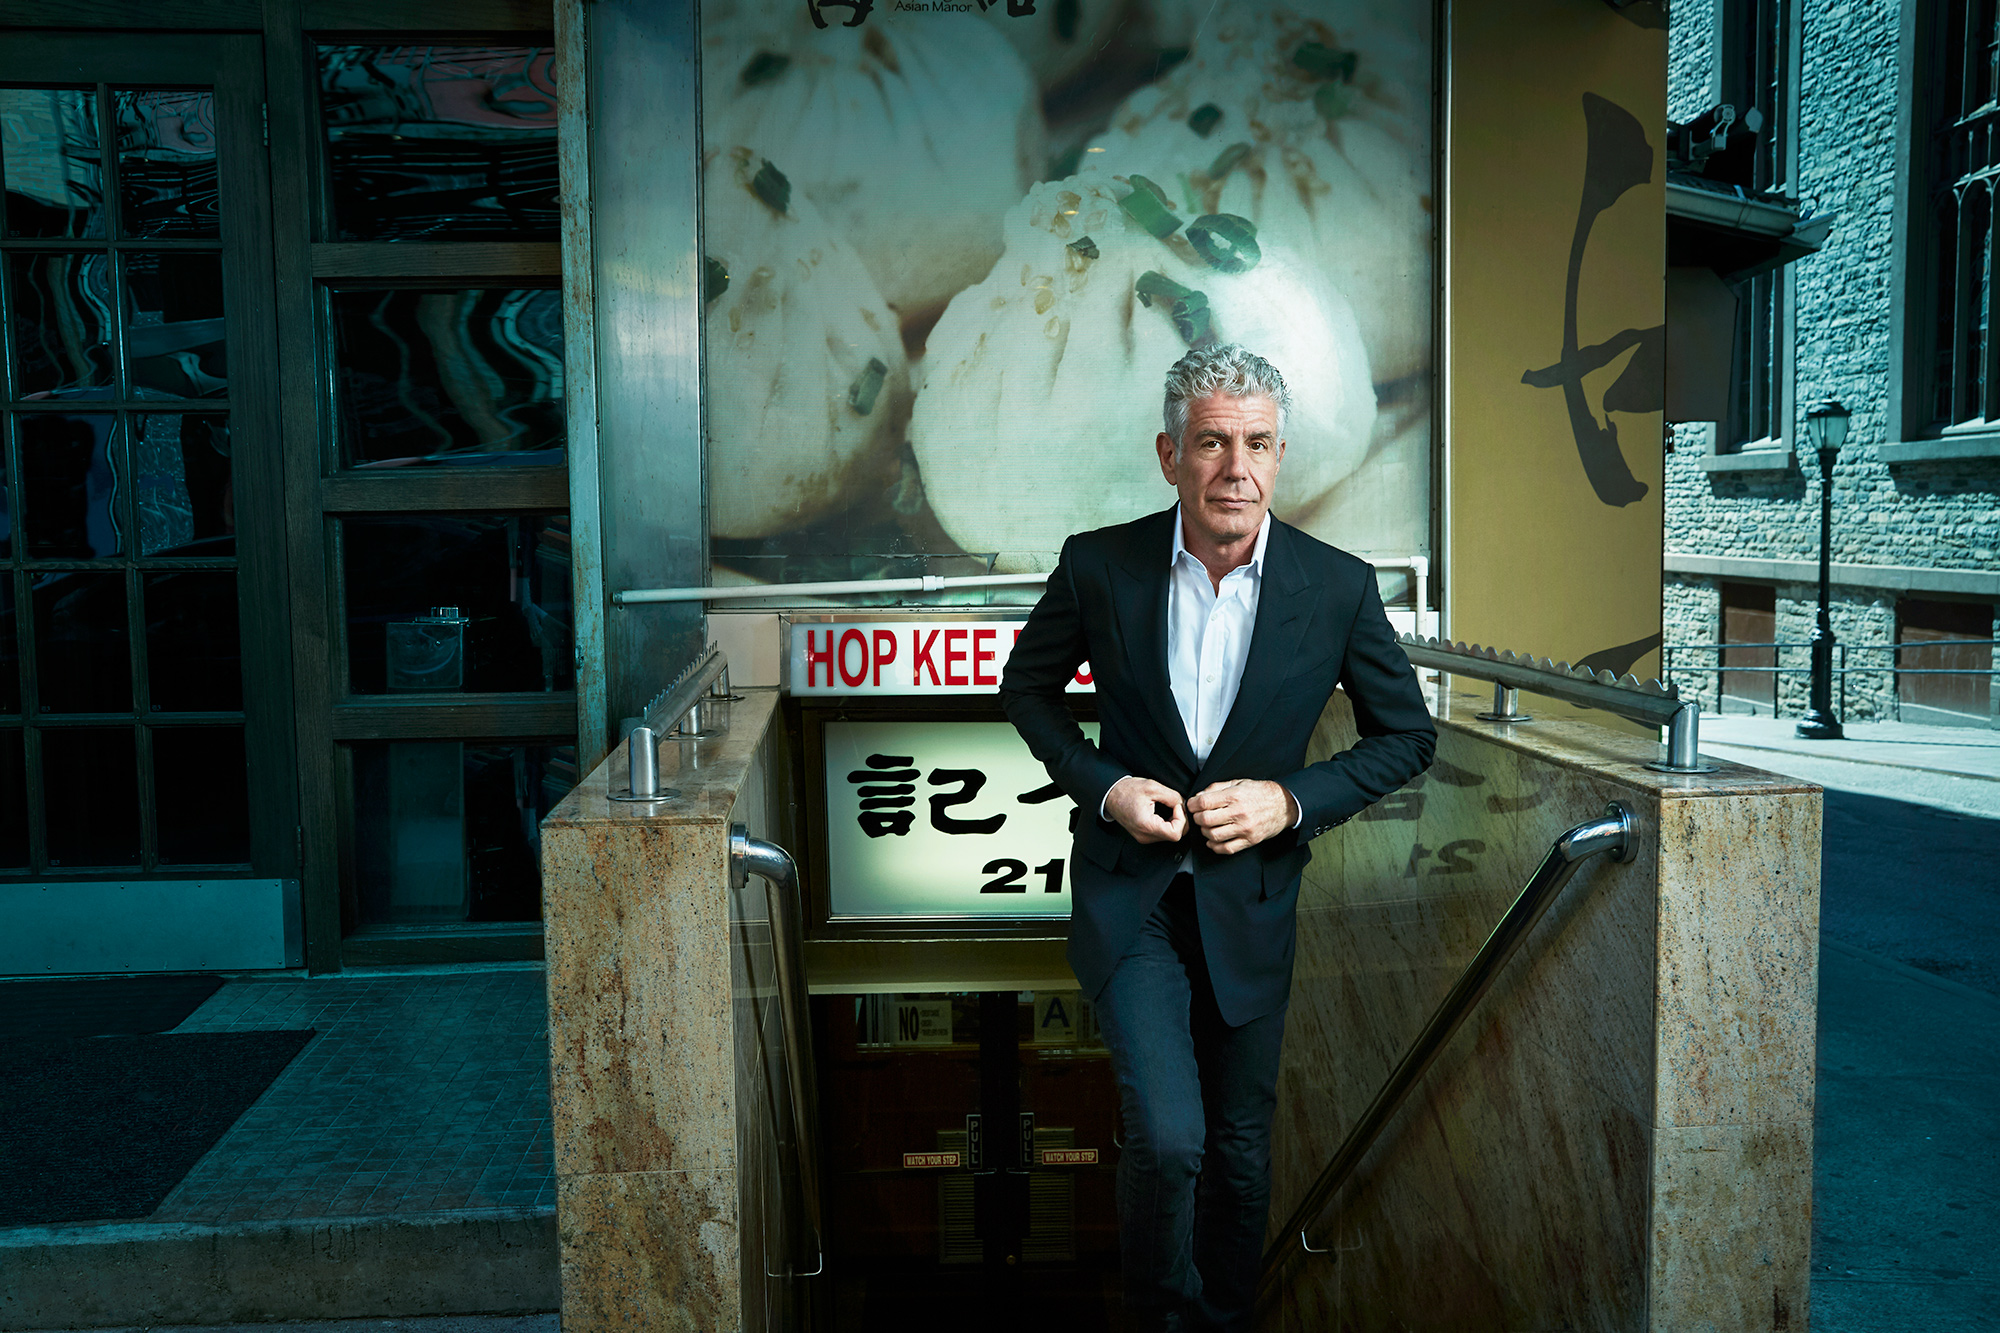 Anthony-Bourdain-by-Robert-Ascroft-02